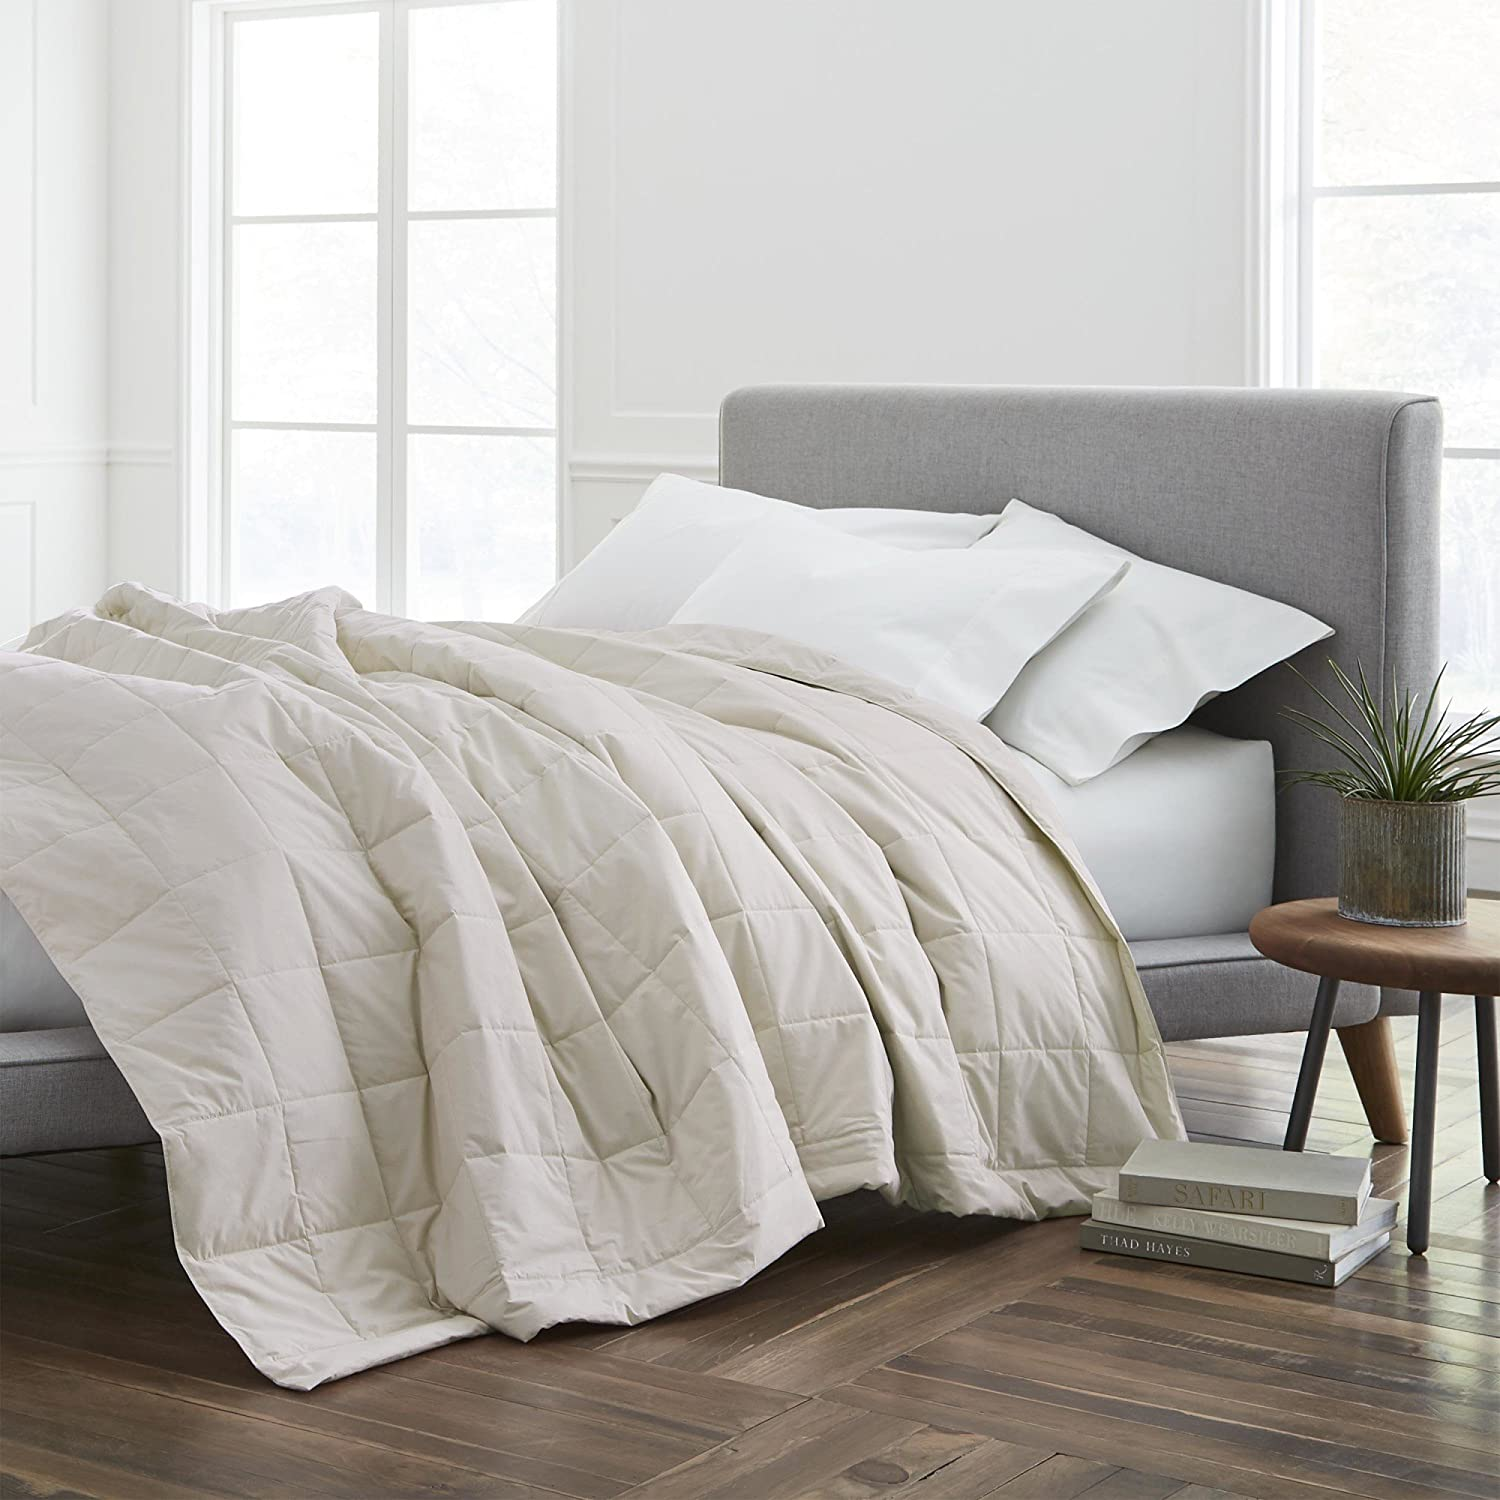 ECO PURE Filled Blanket, Full/Queen, Cream